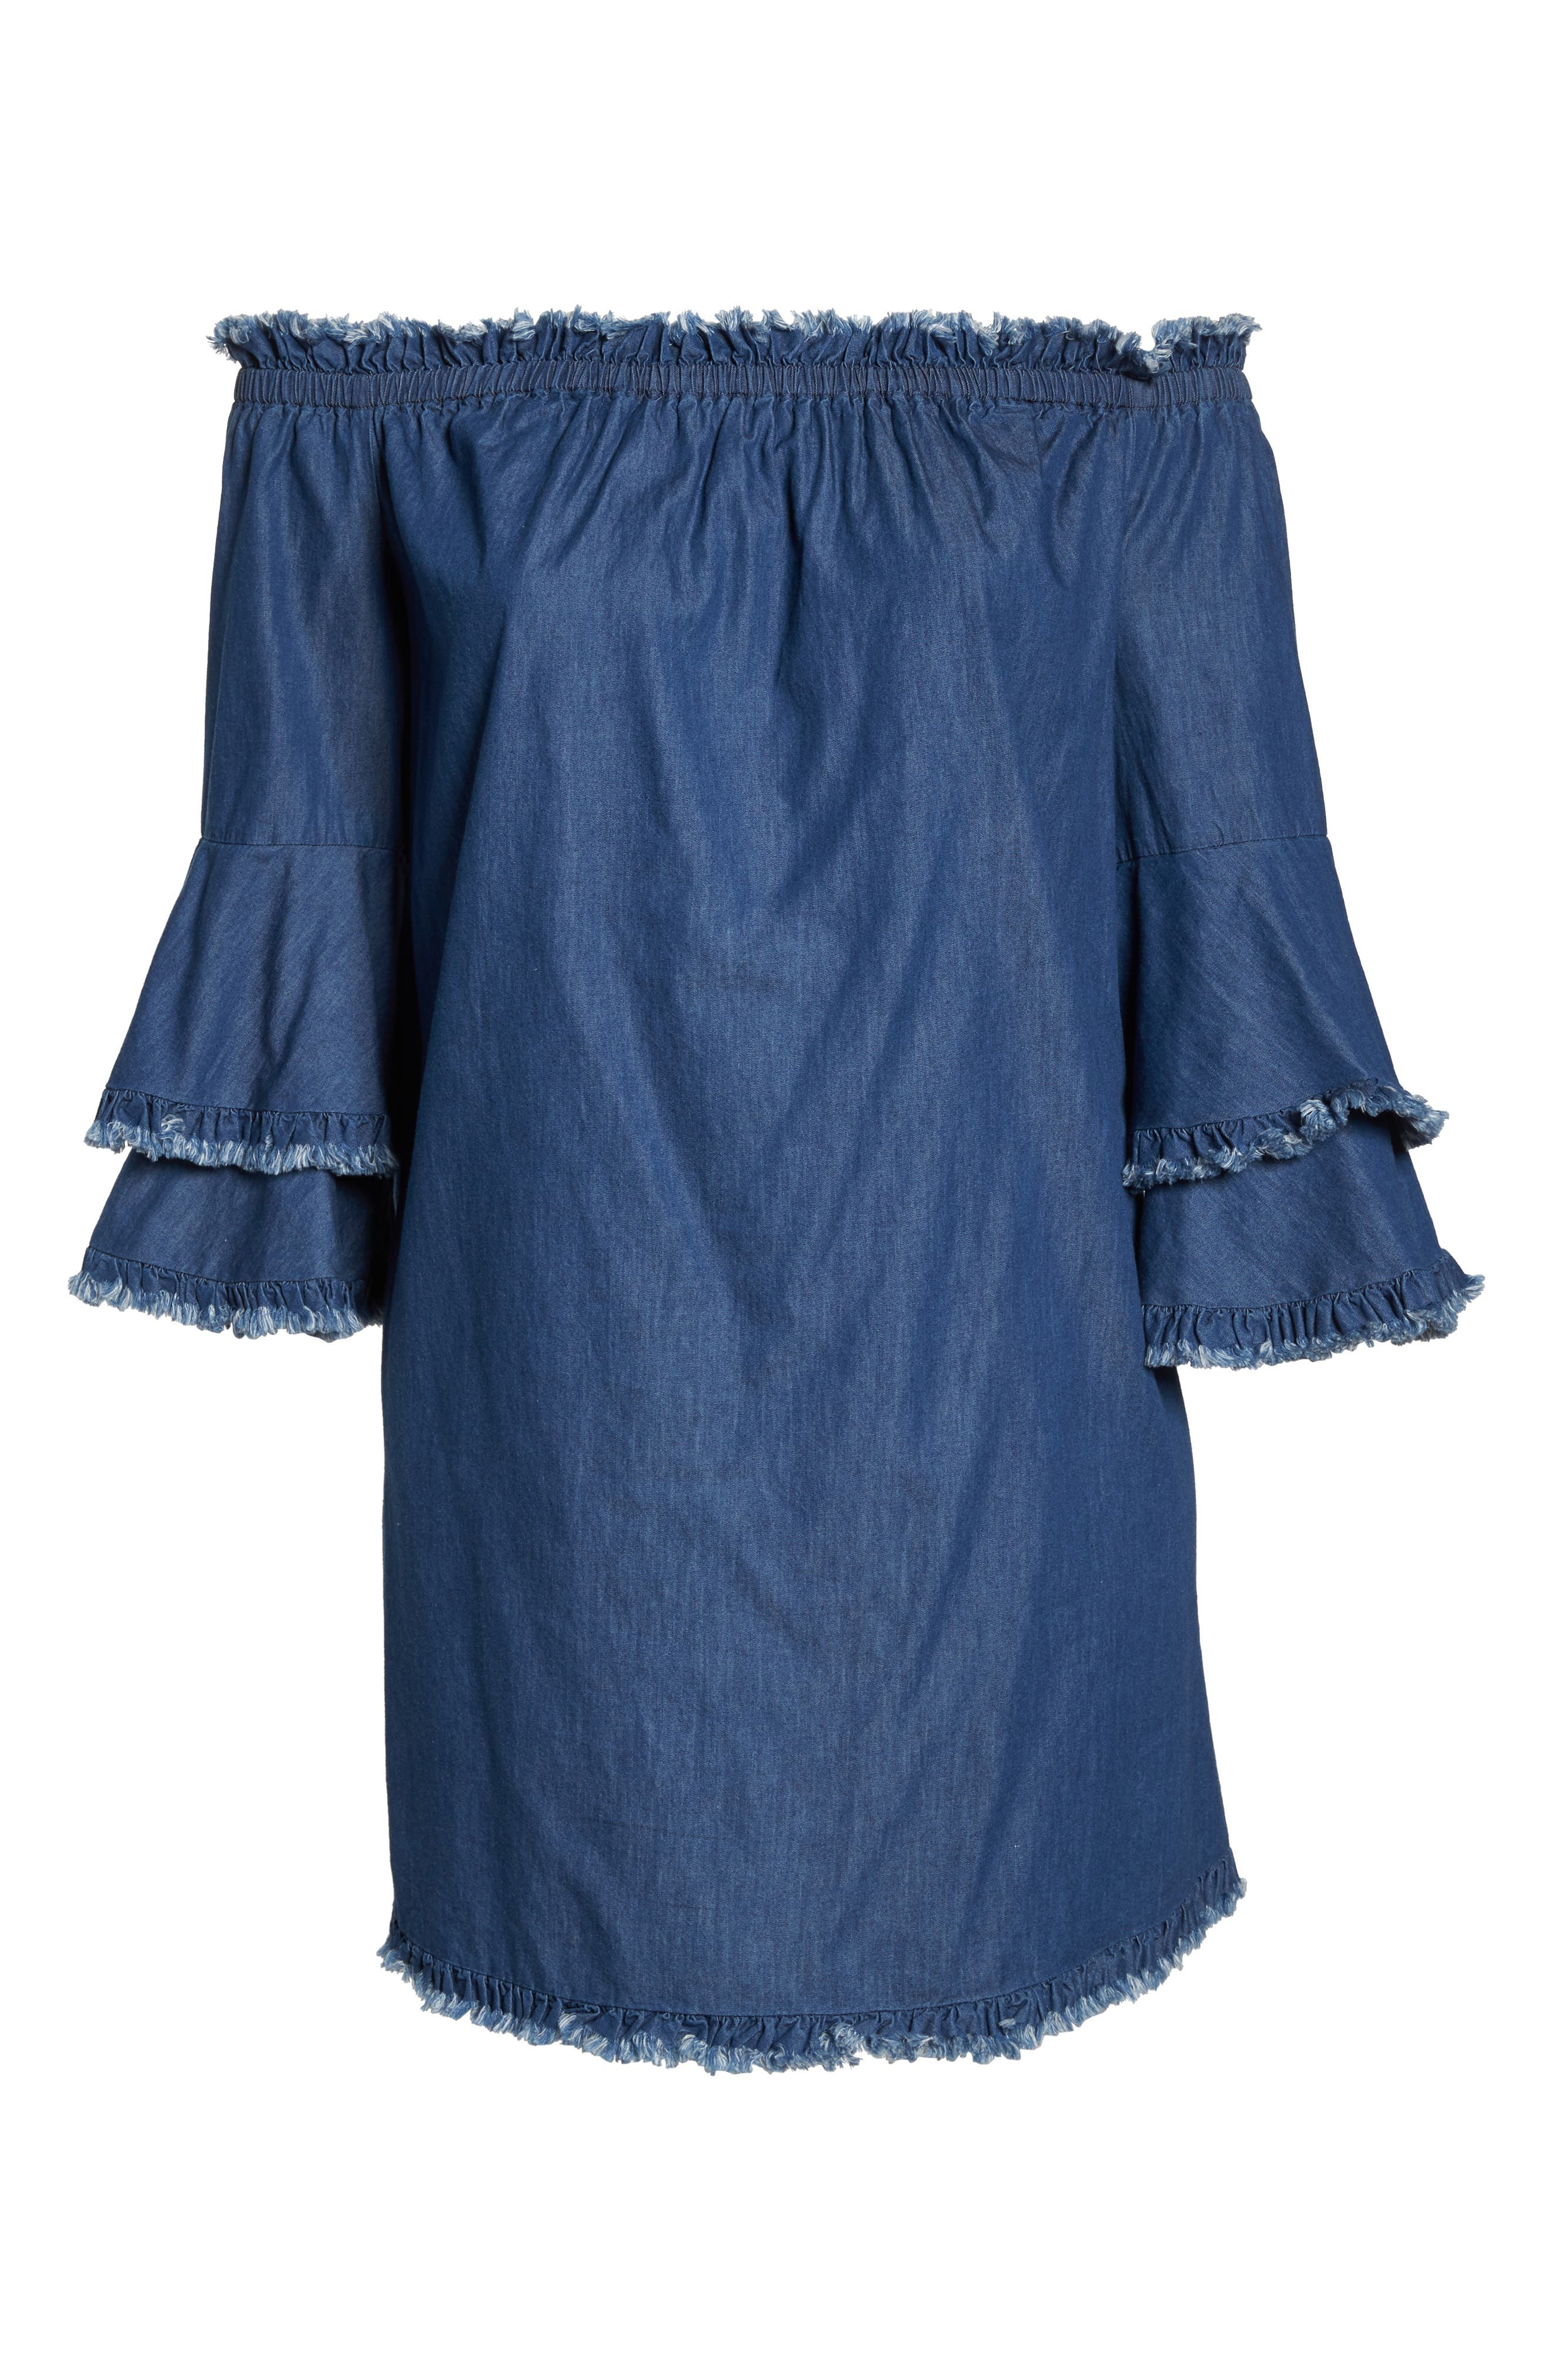 Bell Sleeve Off the Shoulder Denim Shift Dress,                             Alternate thumbnail 7, color,                             INDIGO